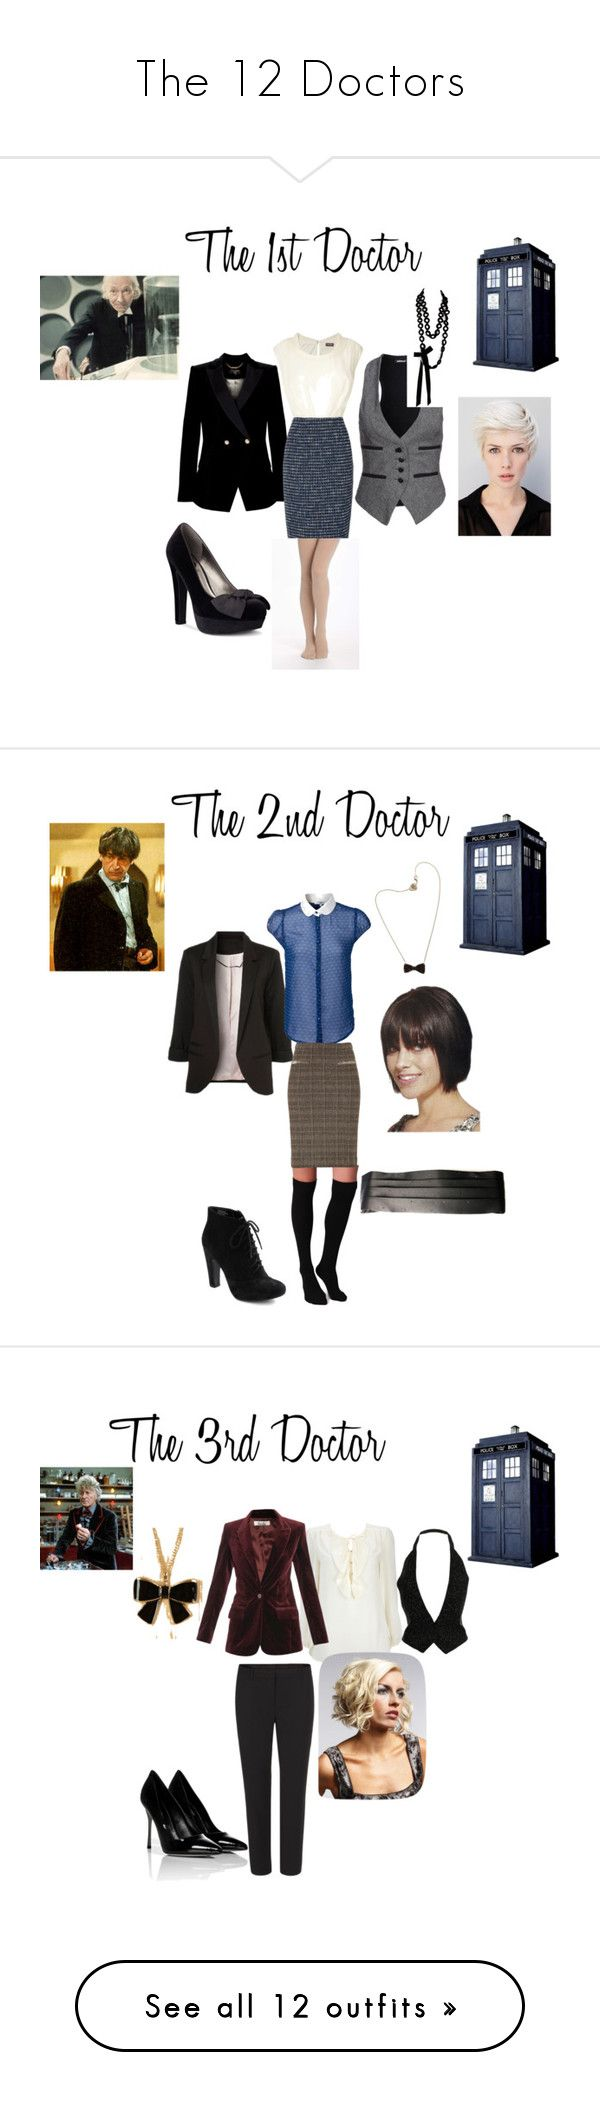 """""""The 12 Doctors"""" by nchavez113 ❤ liked on Polyvore featuring Denham, Ted Baker, Sally Phillips, G by Guess, Phase Eight, Pure + Good, Plush, Aubin & Wills, Etro and Seychelles"""